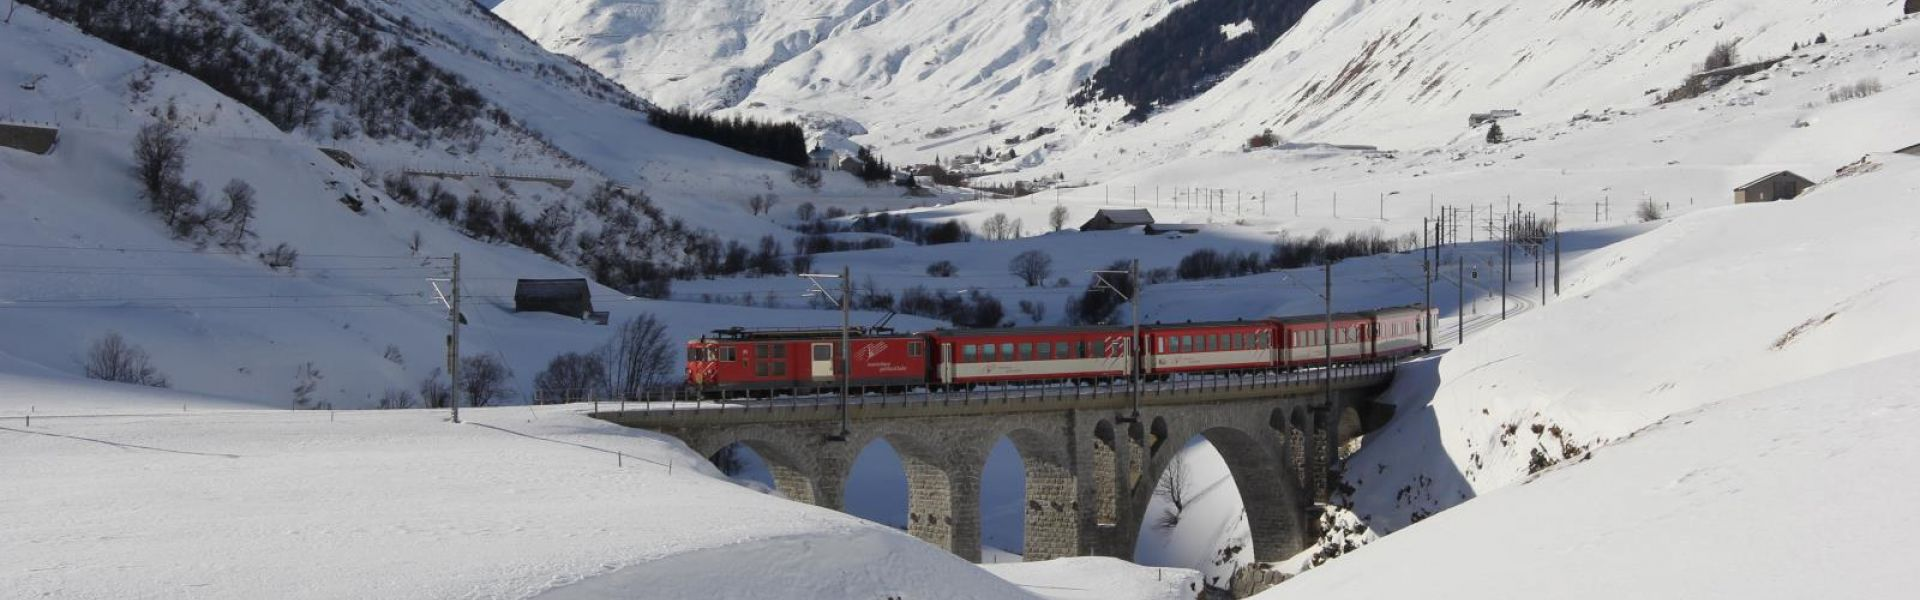 Image result for glacier express between zermatt and st moritz (switzerland)